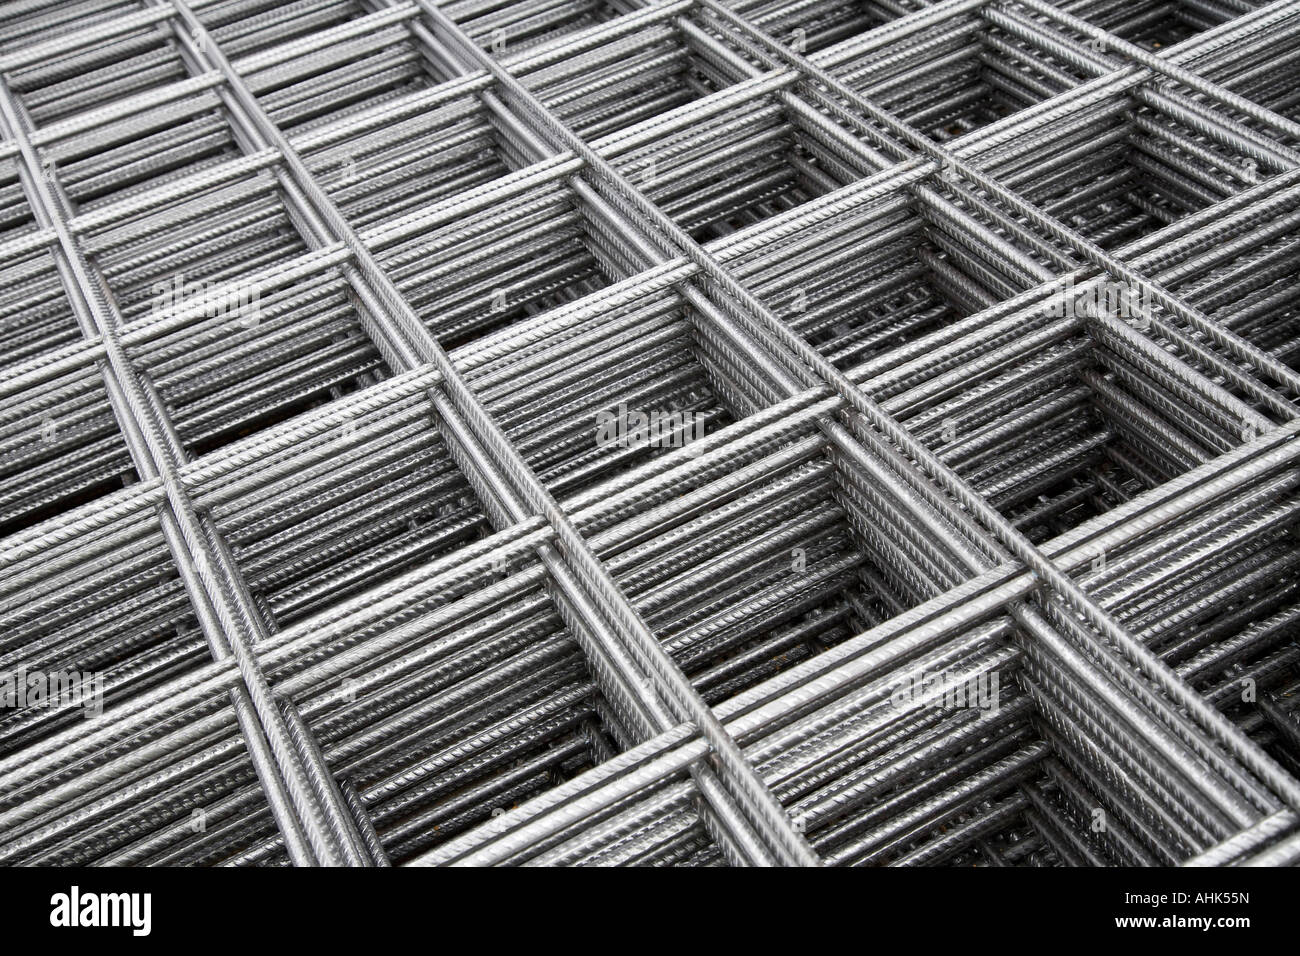 Wire re-inforcement sheets - Stock Image